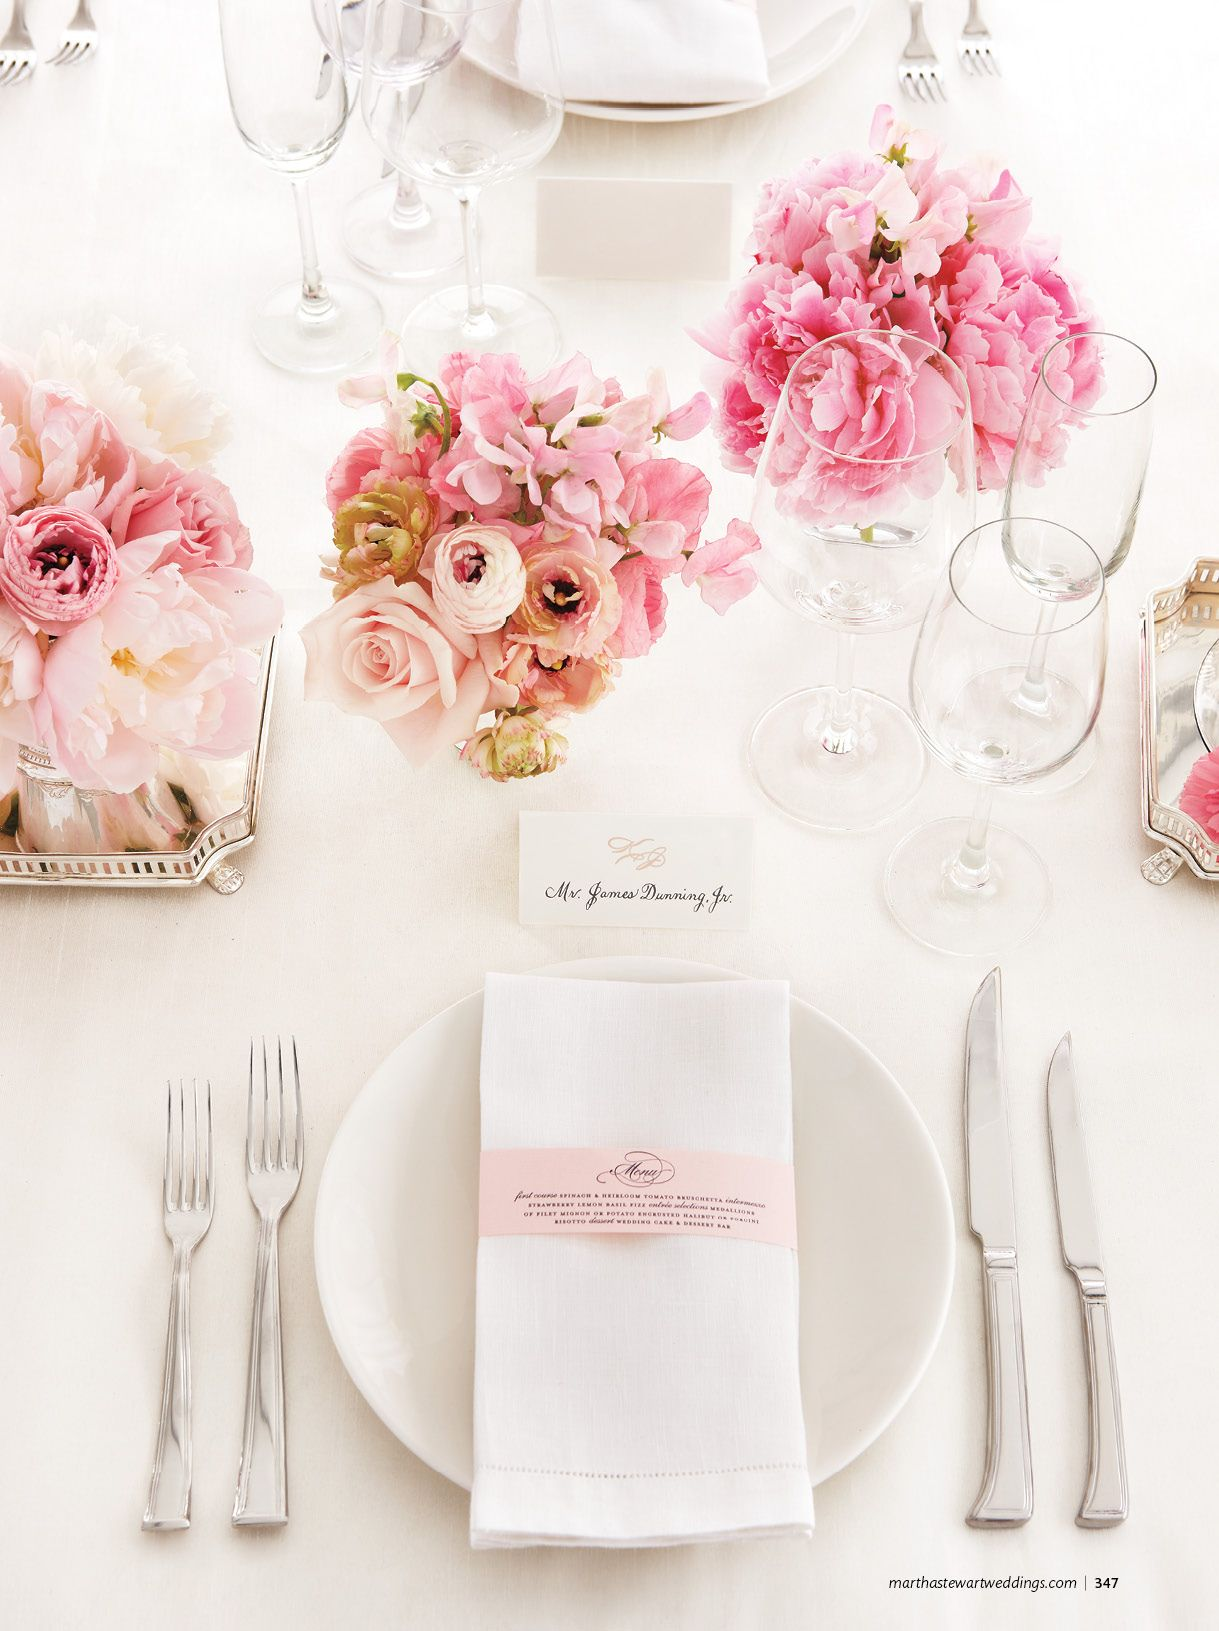 flowers tablesetting | EVENTS | design inspiration ideas | Pinterest ...